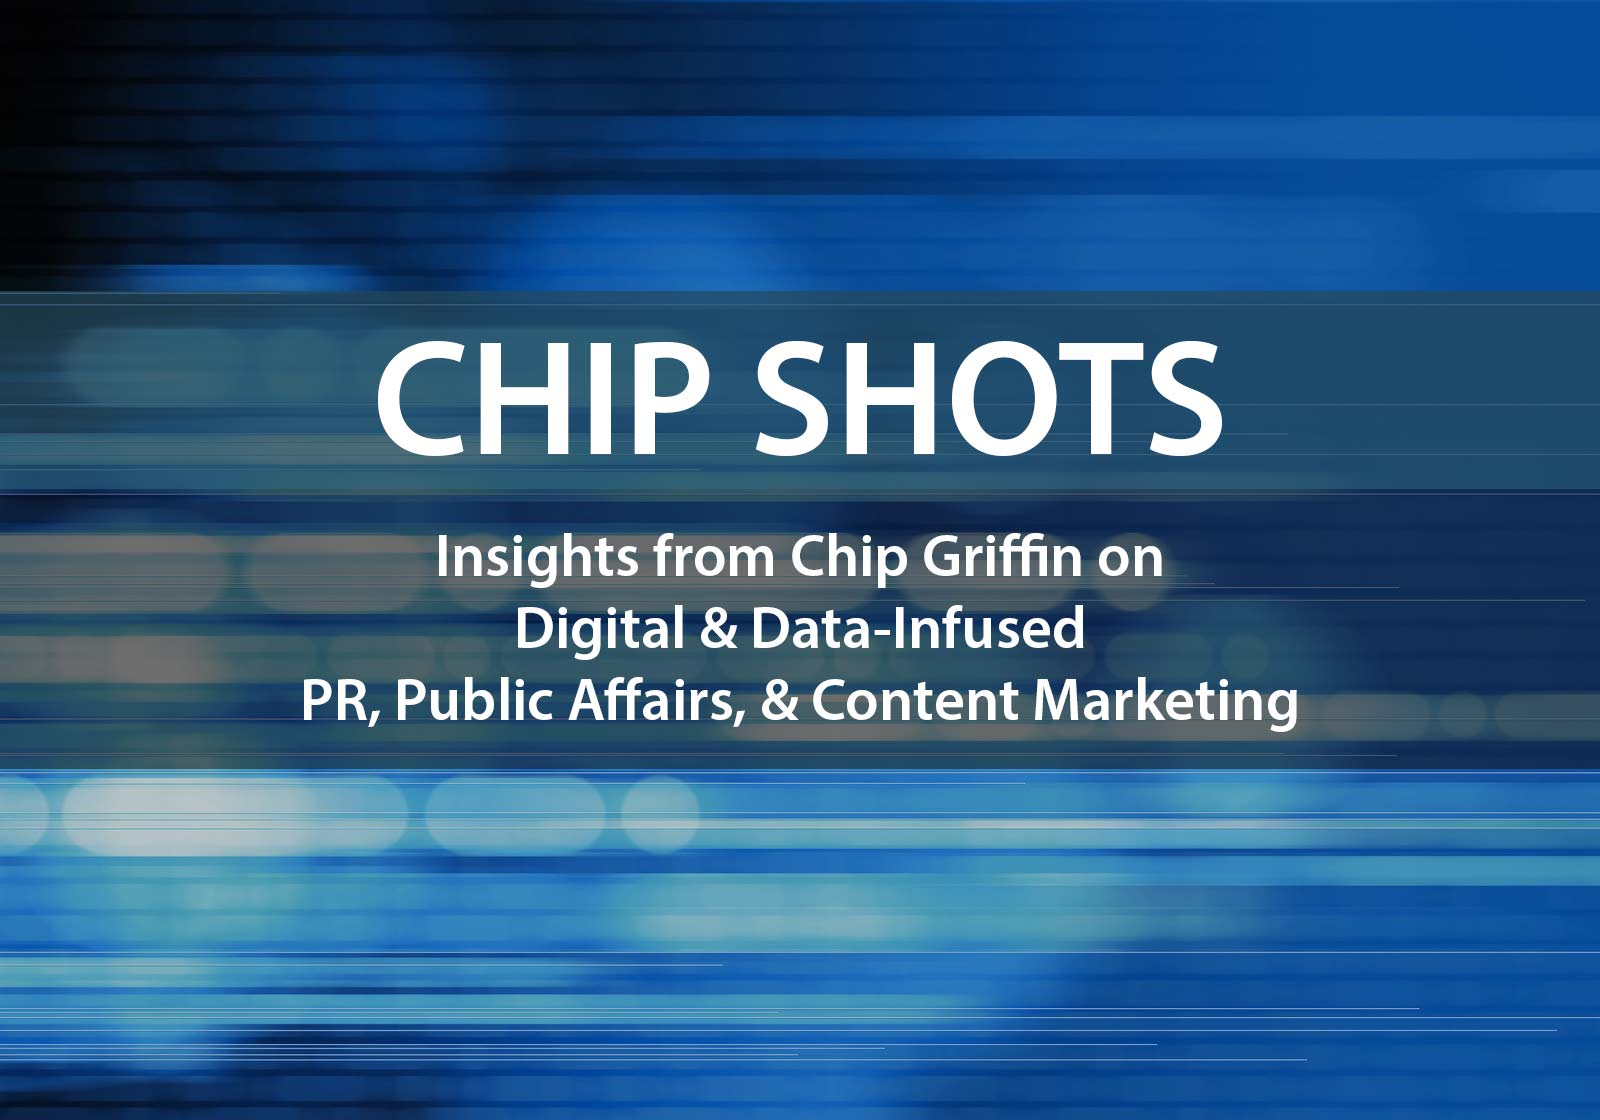 Chip Shots for July 16, 2017: AI, Measurement, and Leadership